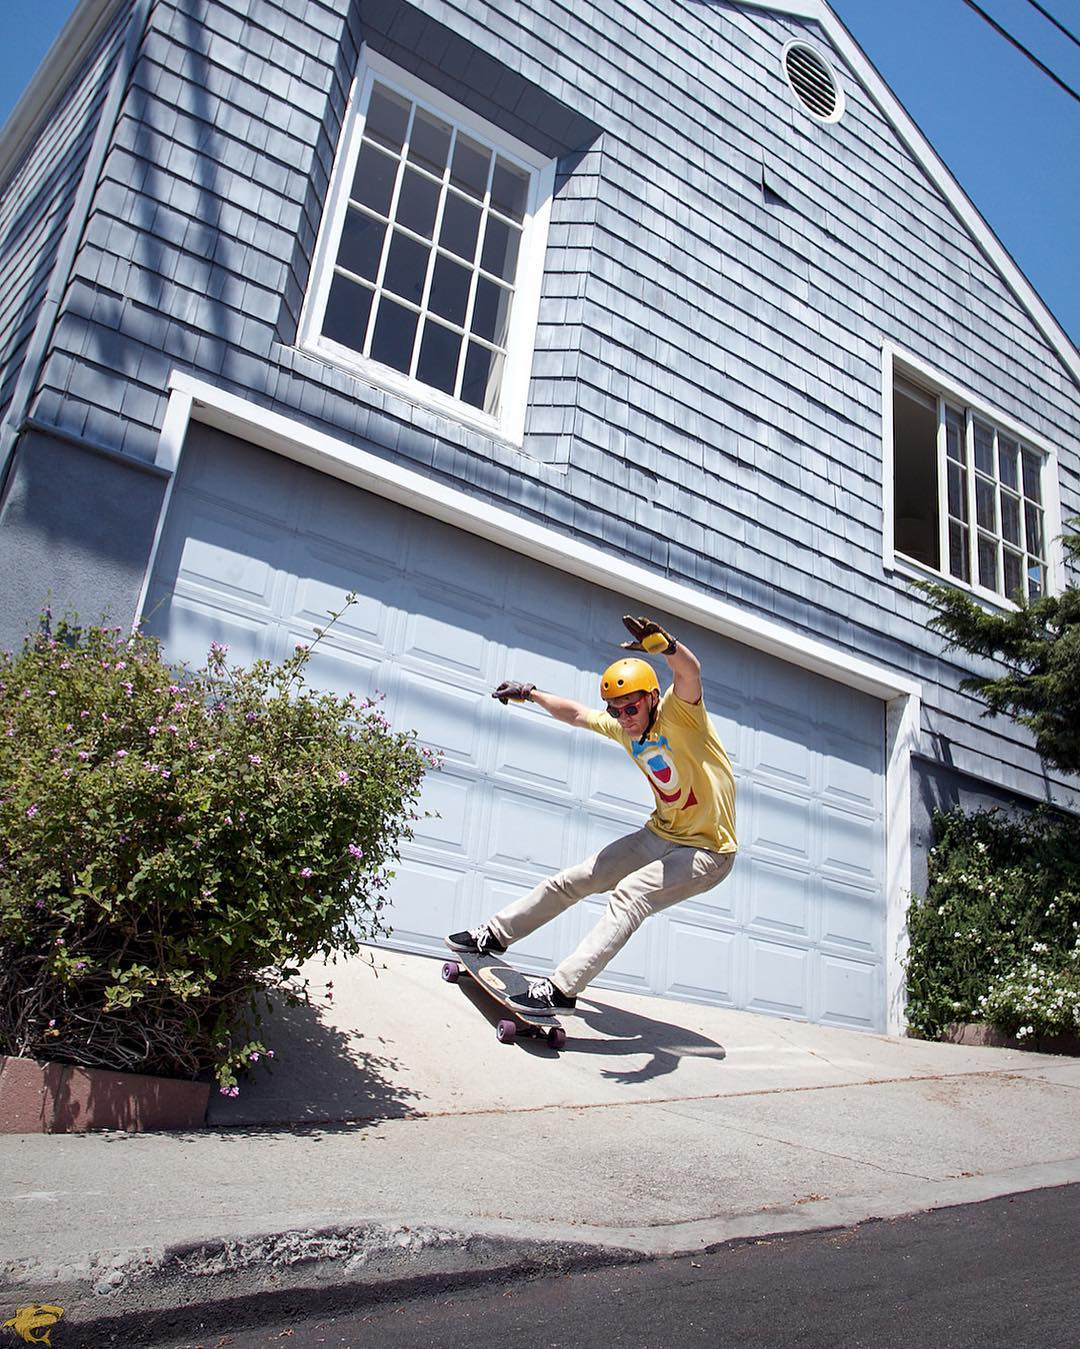 #OrangatangAmbassador @danielfissmer slashing a driveway with arms wide open.